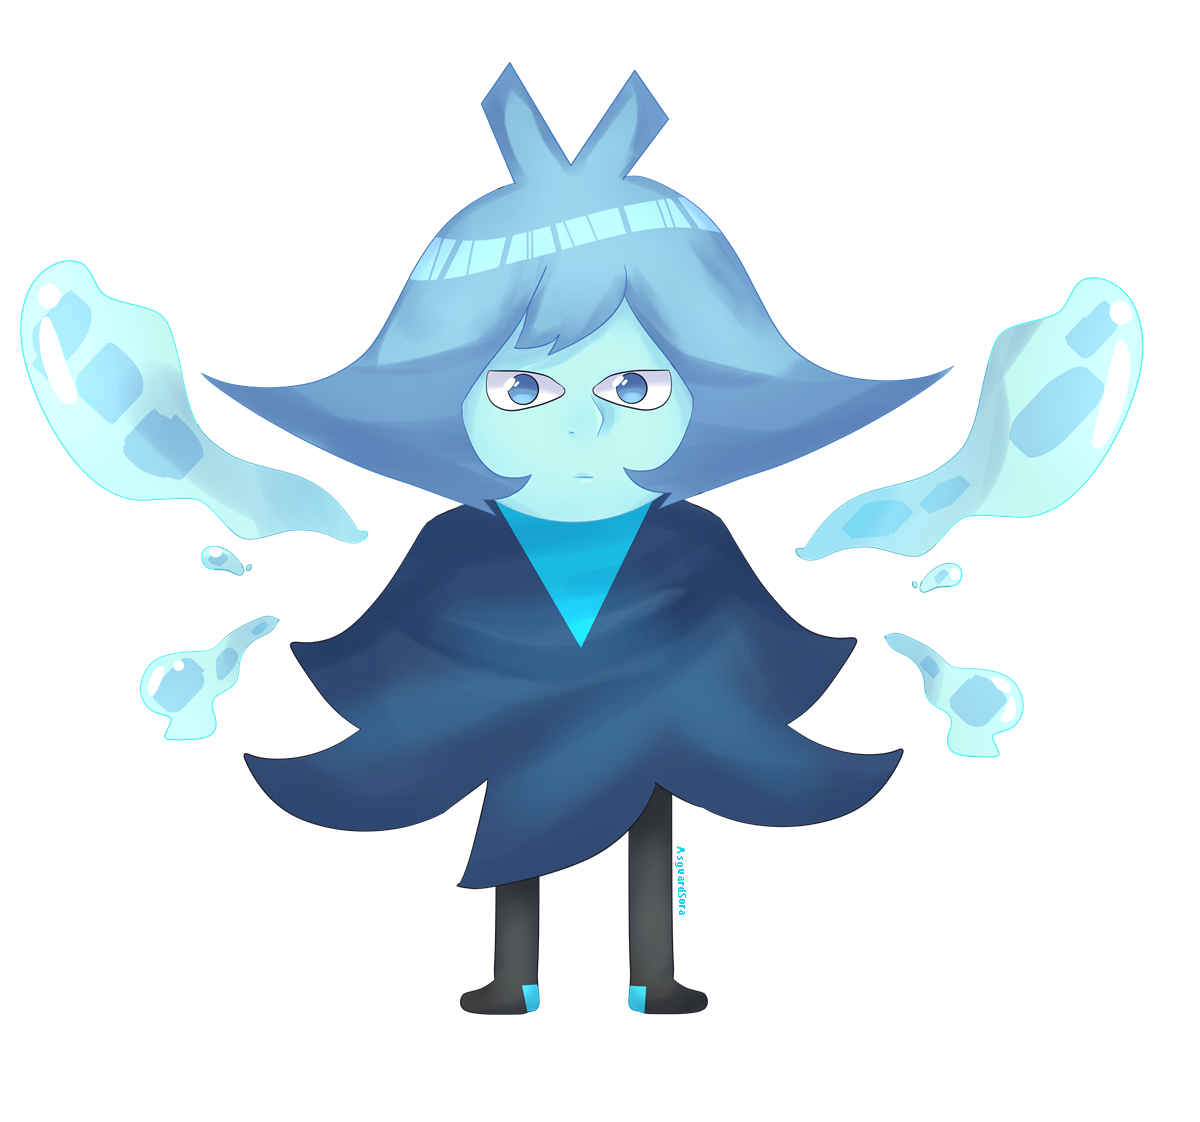 The New Gem, Aquamarine I suppose?